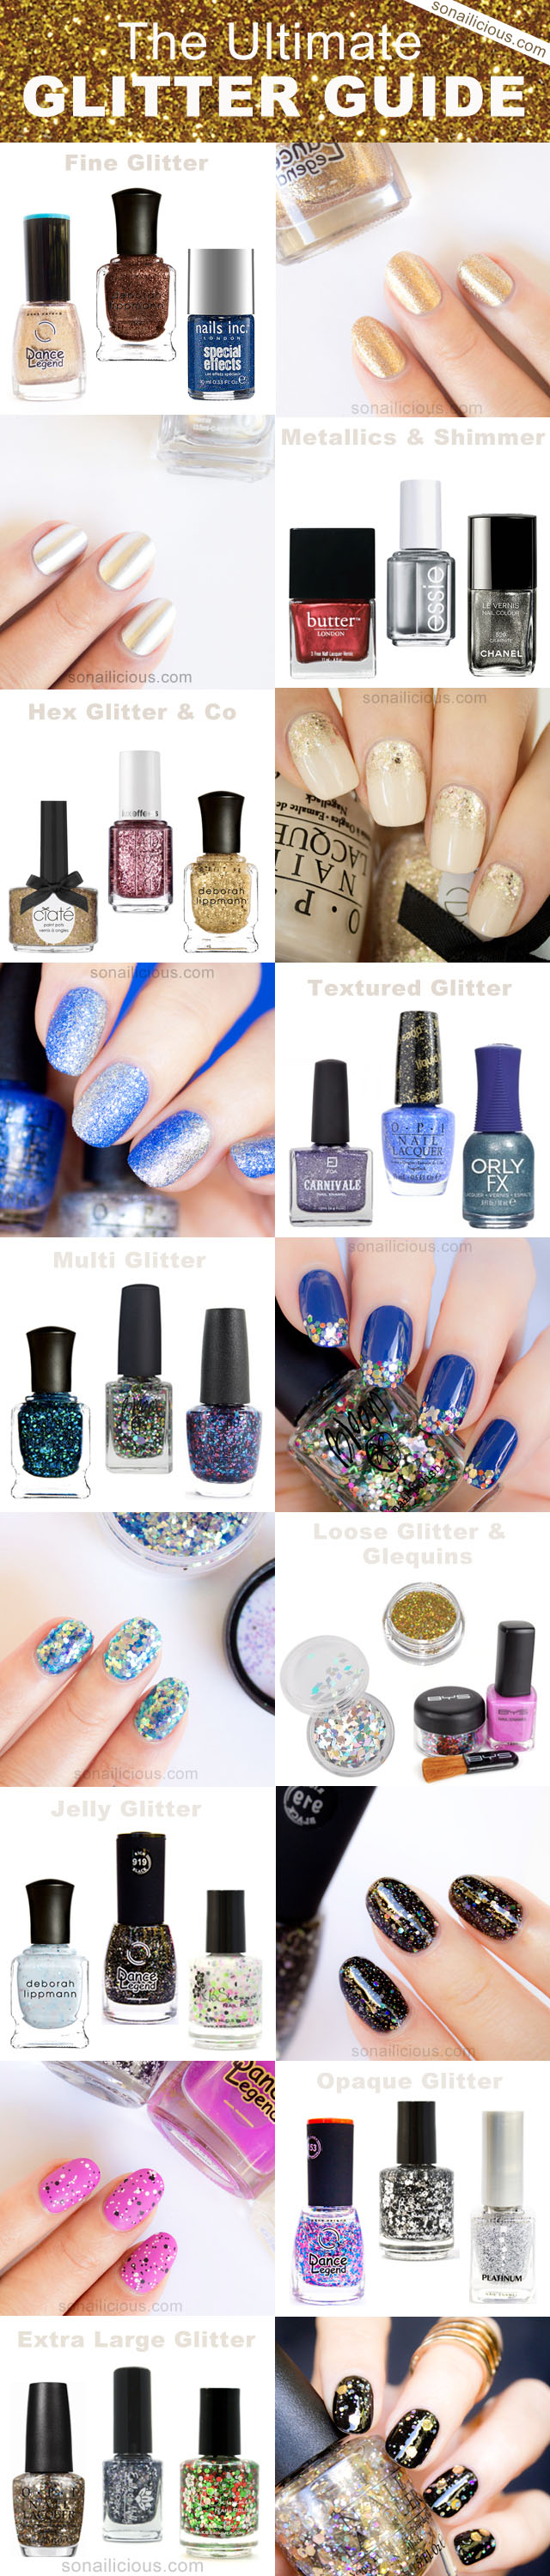 glitter nails ultimate guide